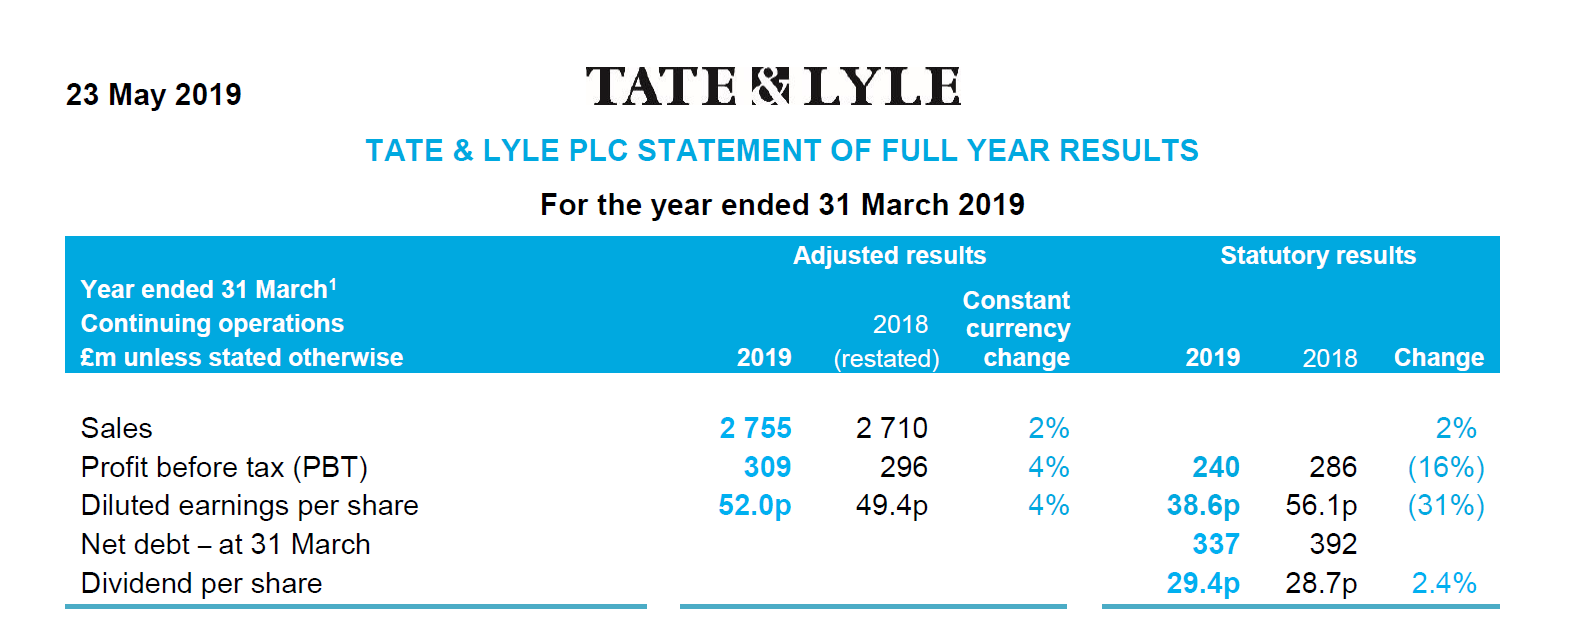 FY19 statement of full year results